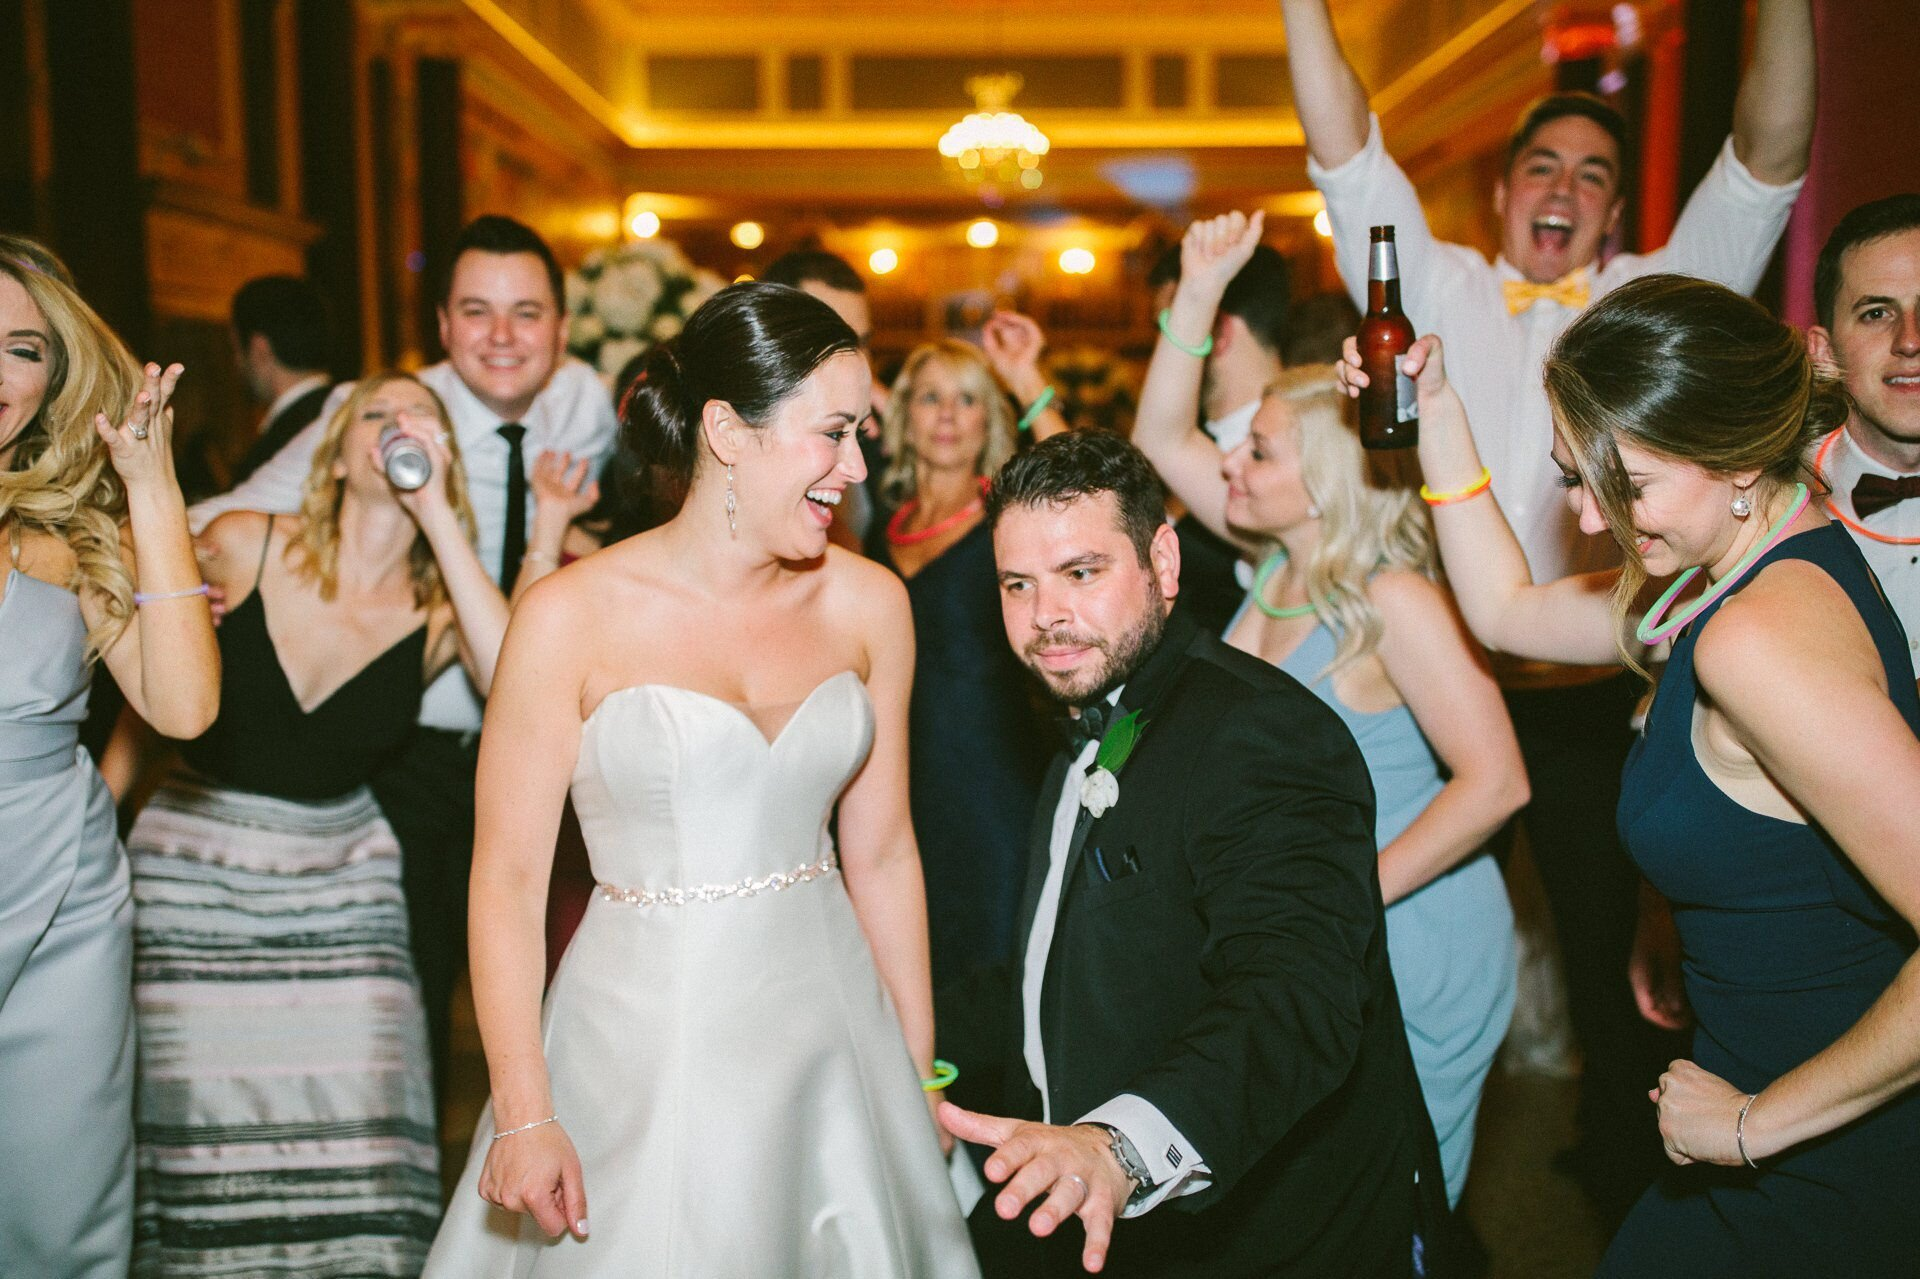 Playhouse State Theater Wedding Photographer in Cleveland 2 42.jpg